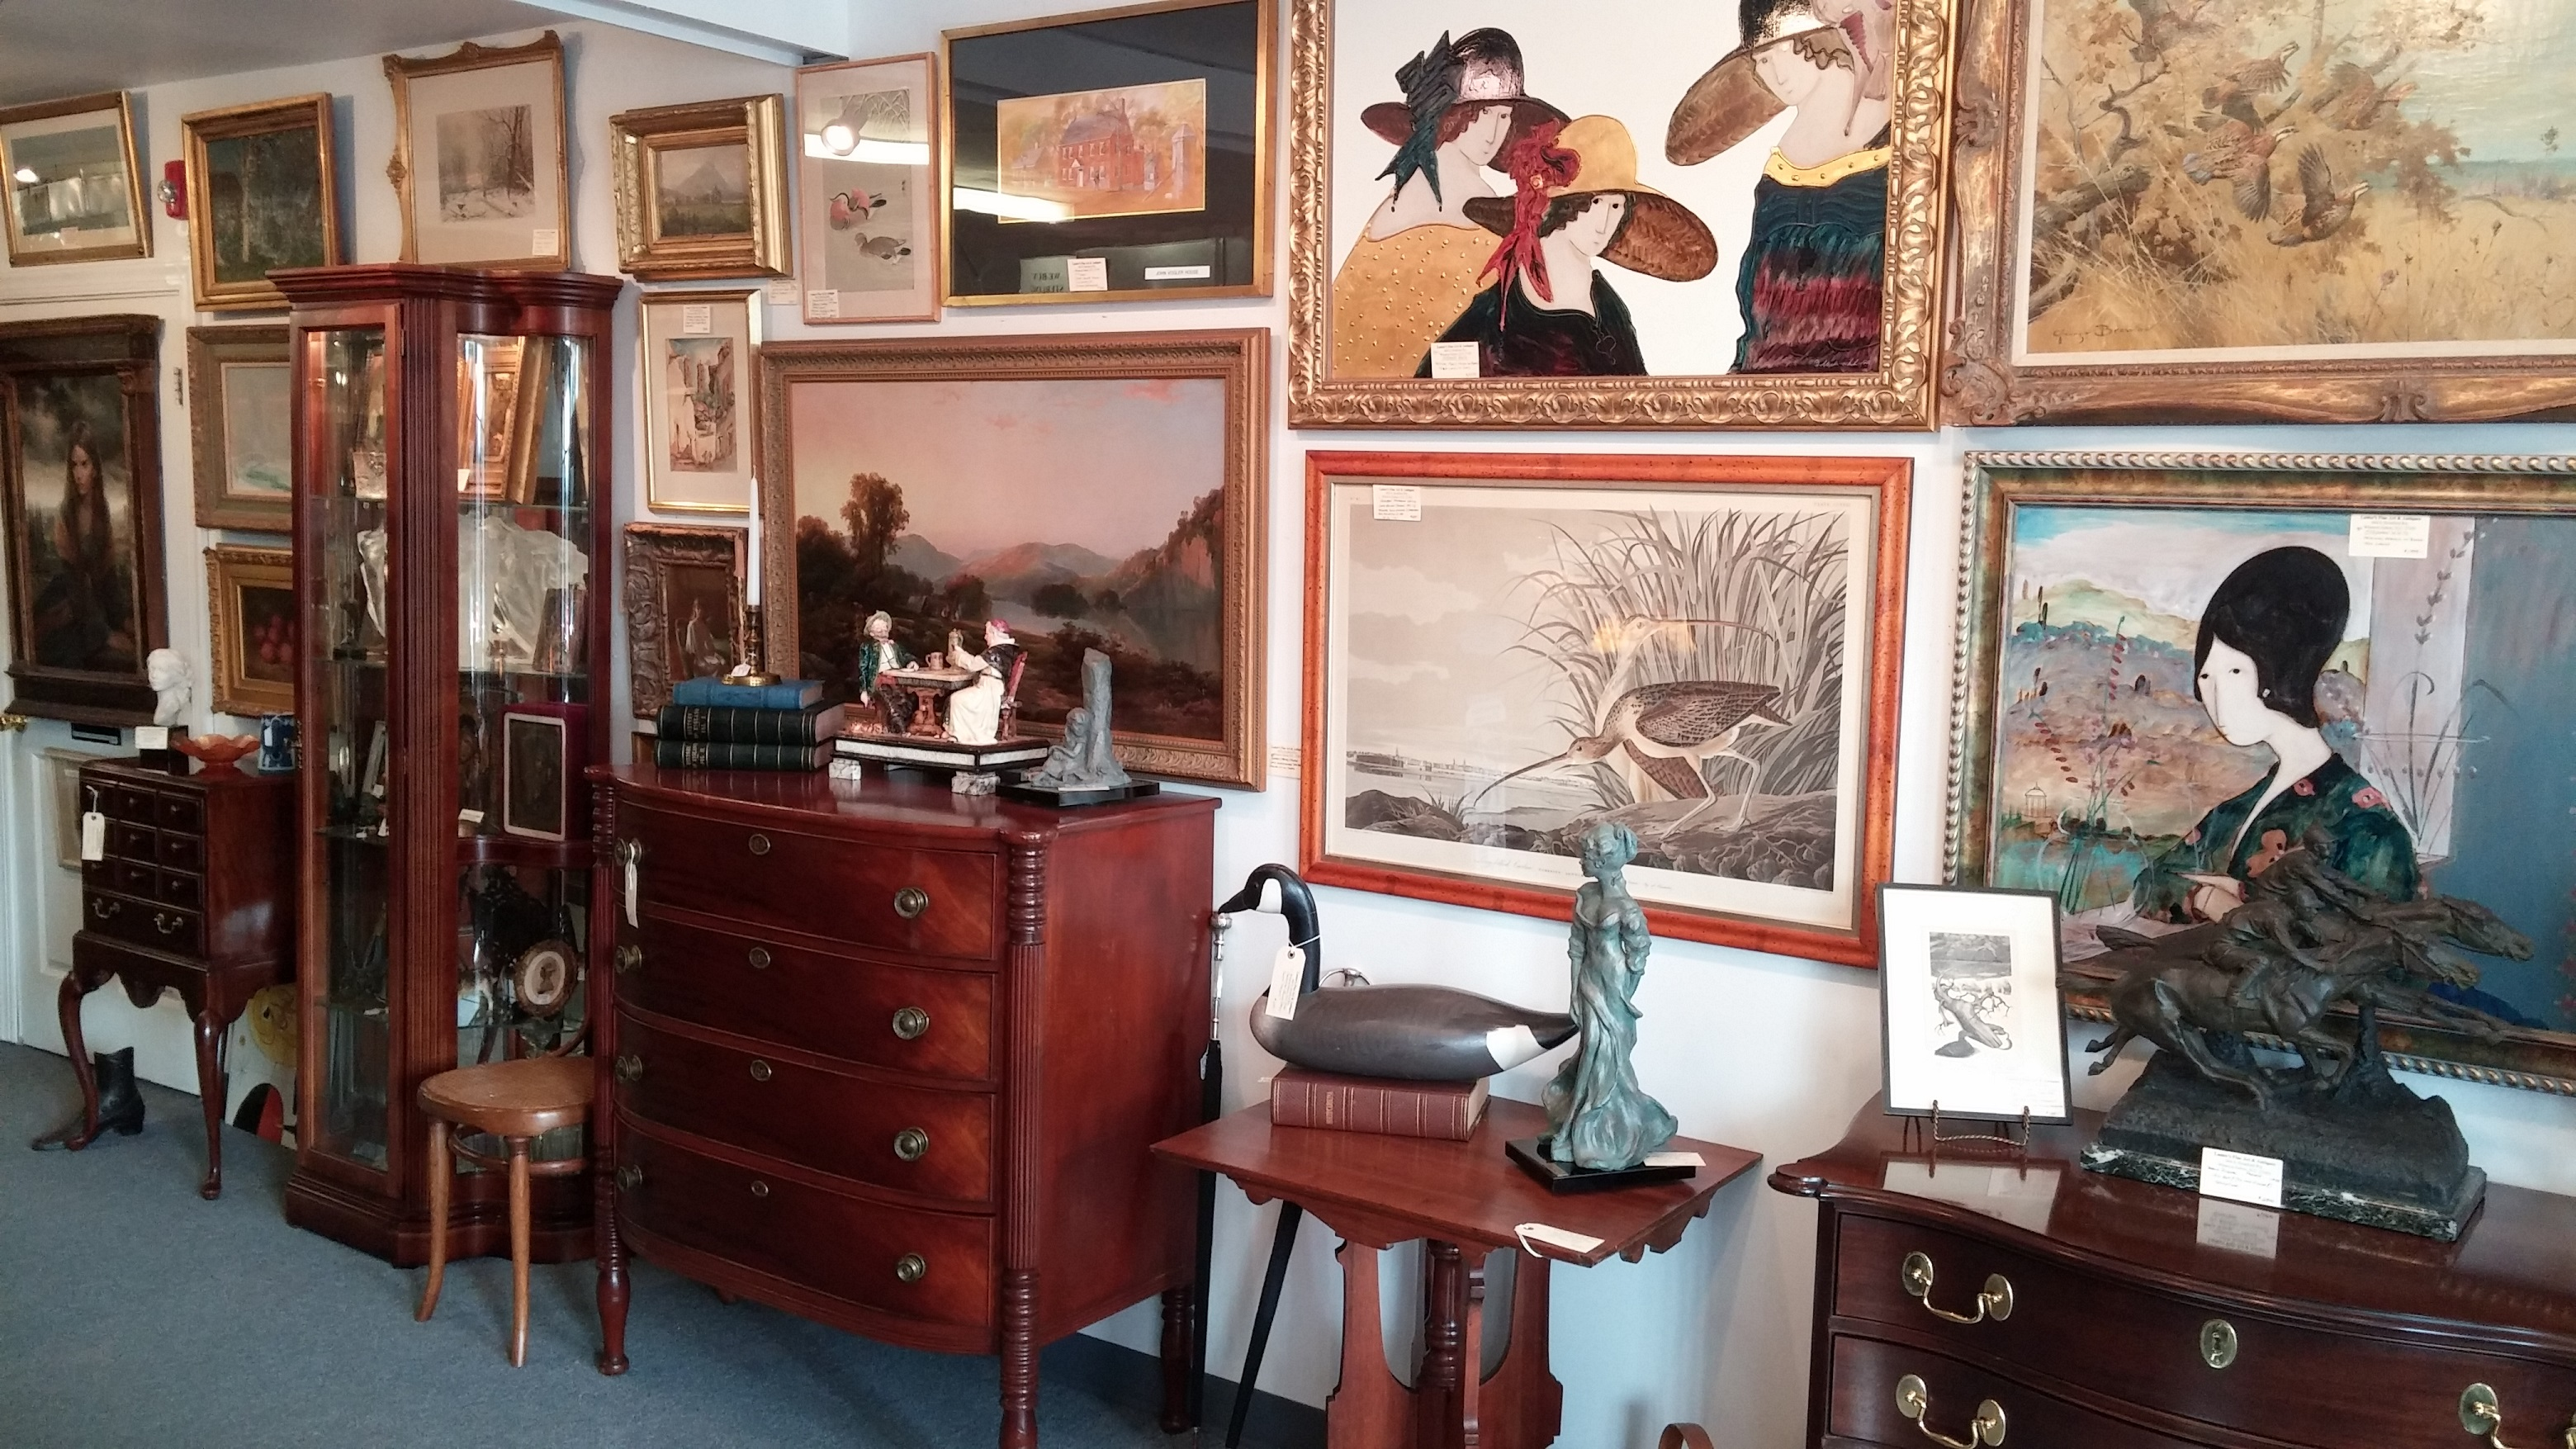 antique stores salem oregon Laster's Fine Art & Antiques | Antique Store Winston Salem, NC antique stores salem oregon